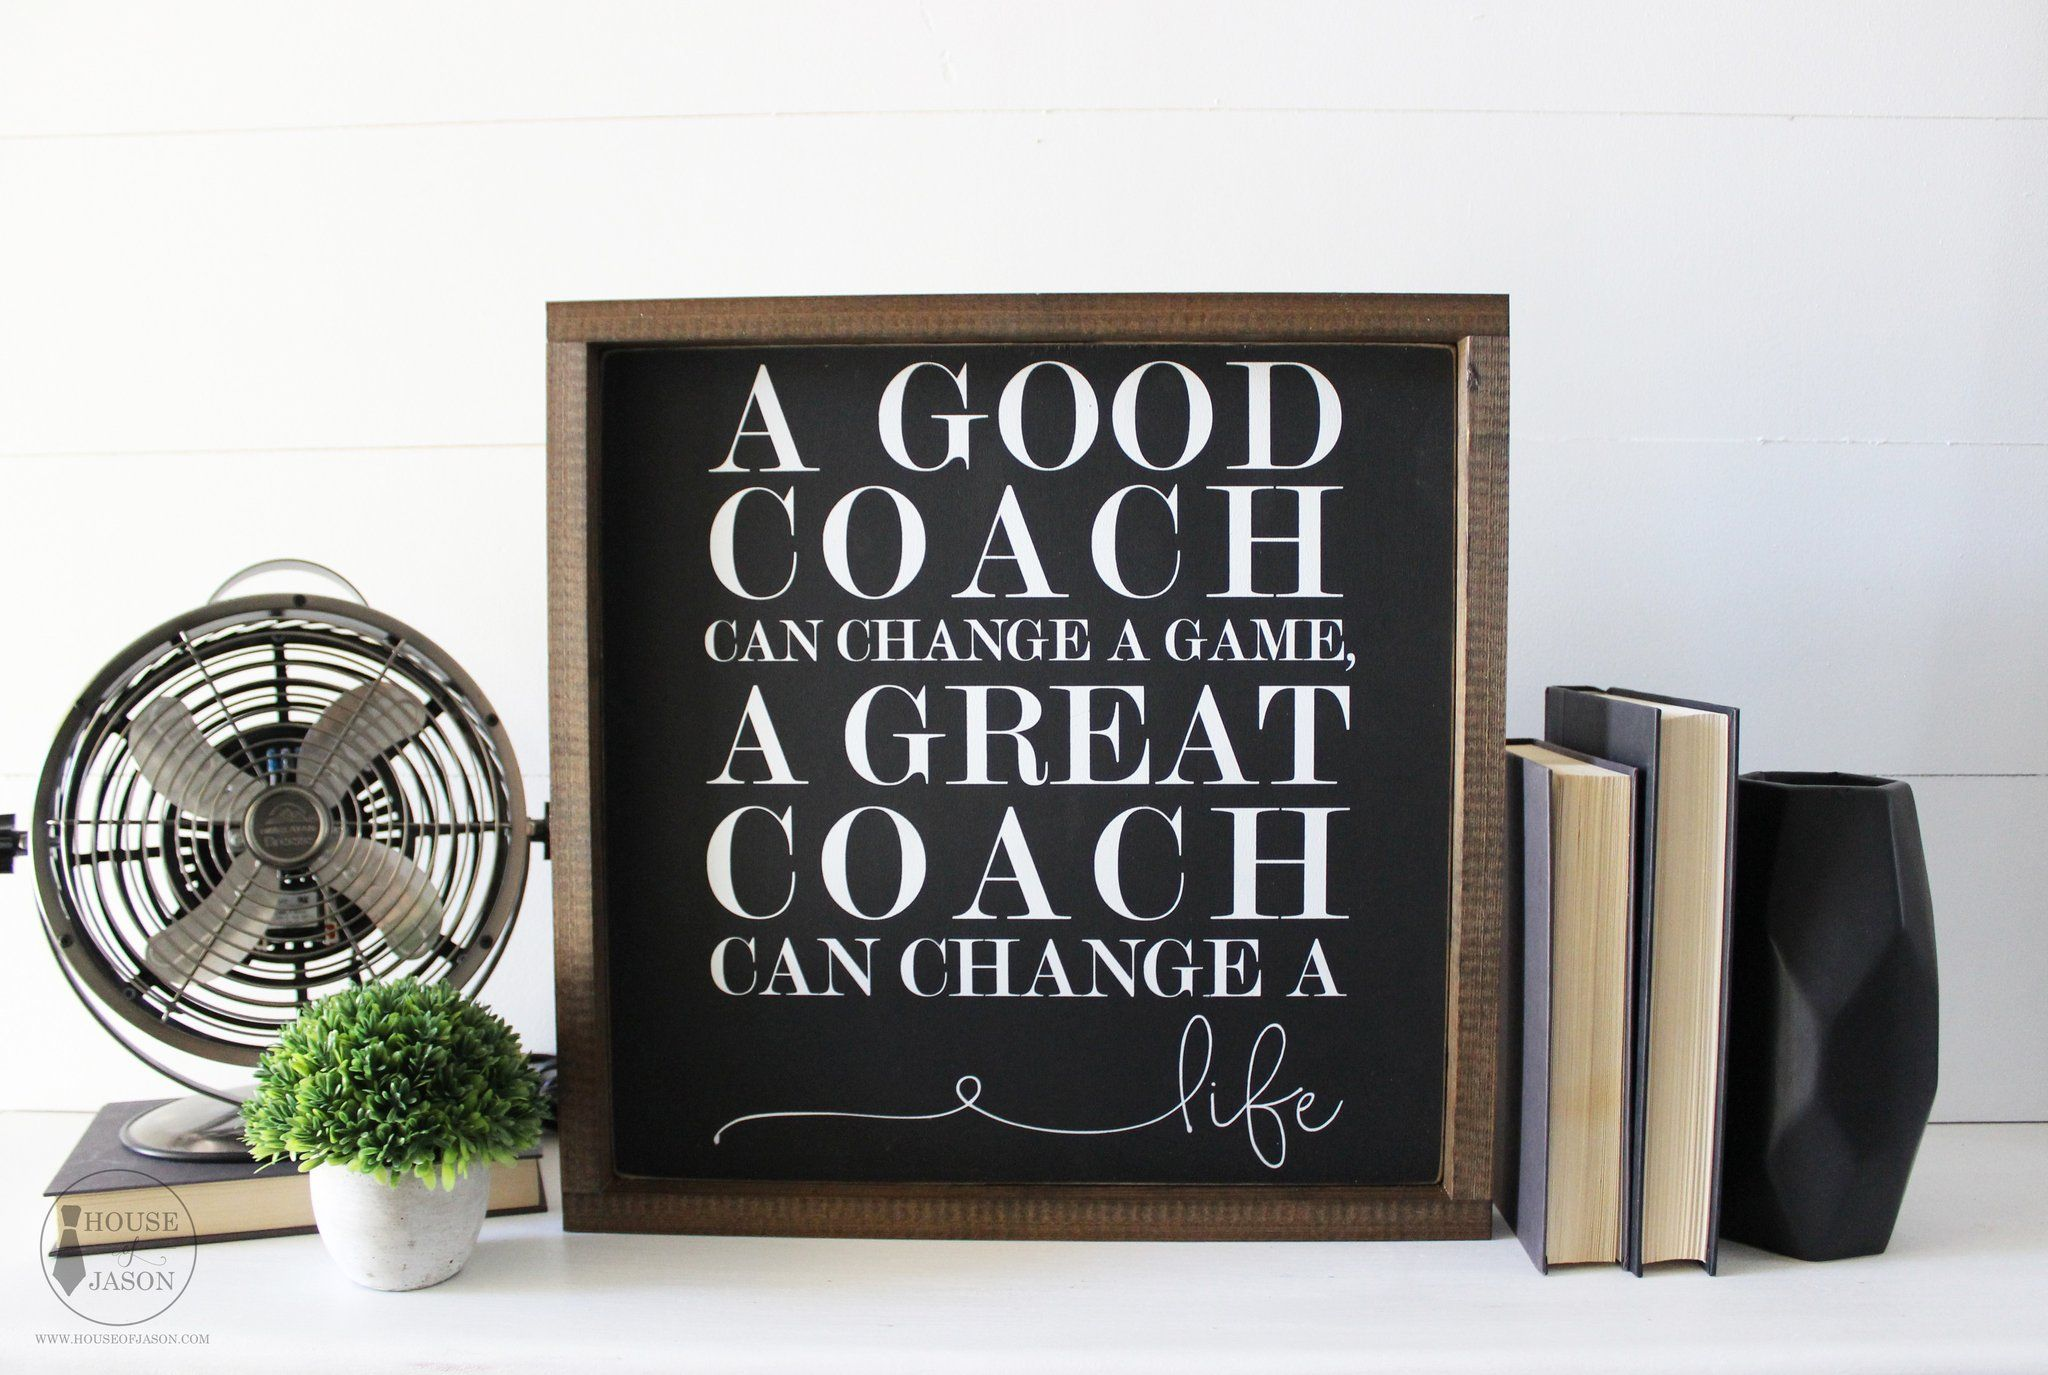 Decorative signs wholesale signs office decor gift for him gifts for husband gifts for boyfriend gift for coach coaches gift house of jason home